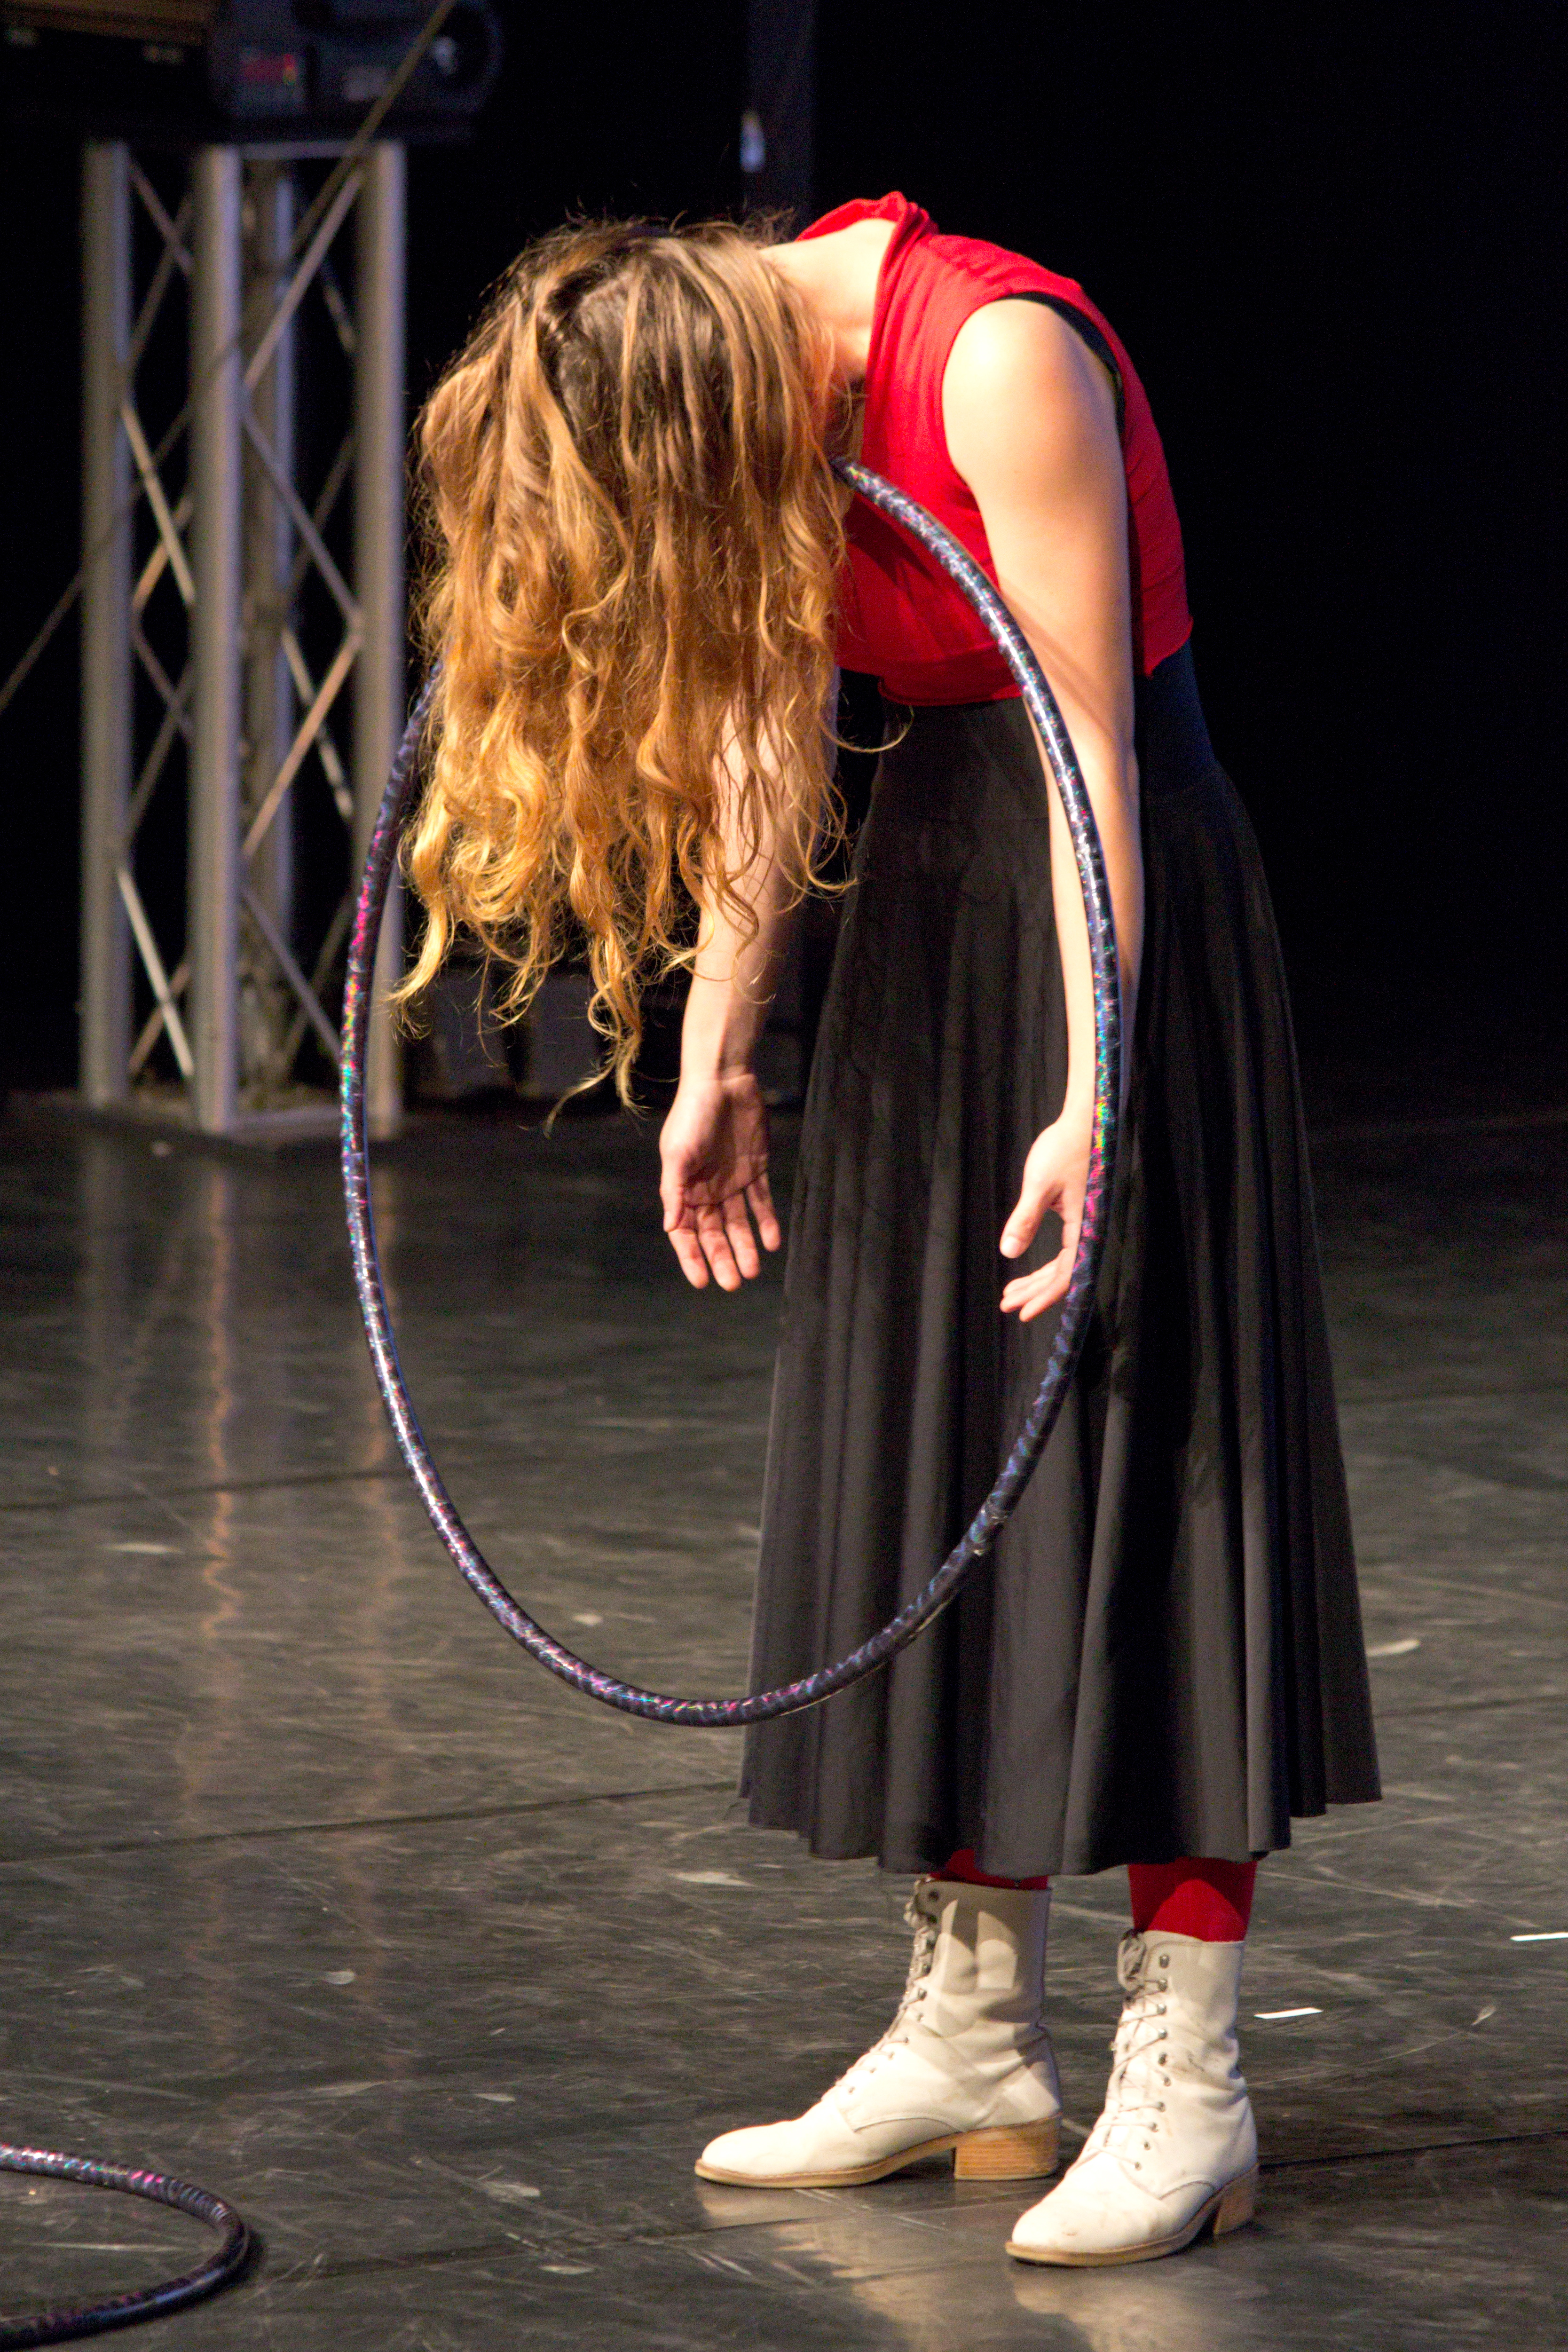 Berlin Juggling Convention 2013 Gala Show: Marianna de Sanctis.